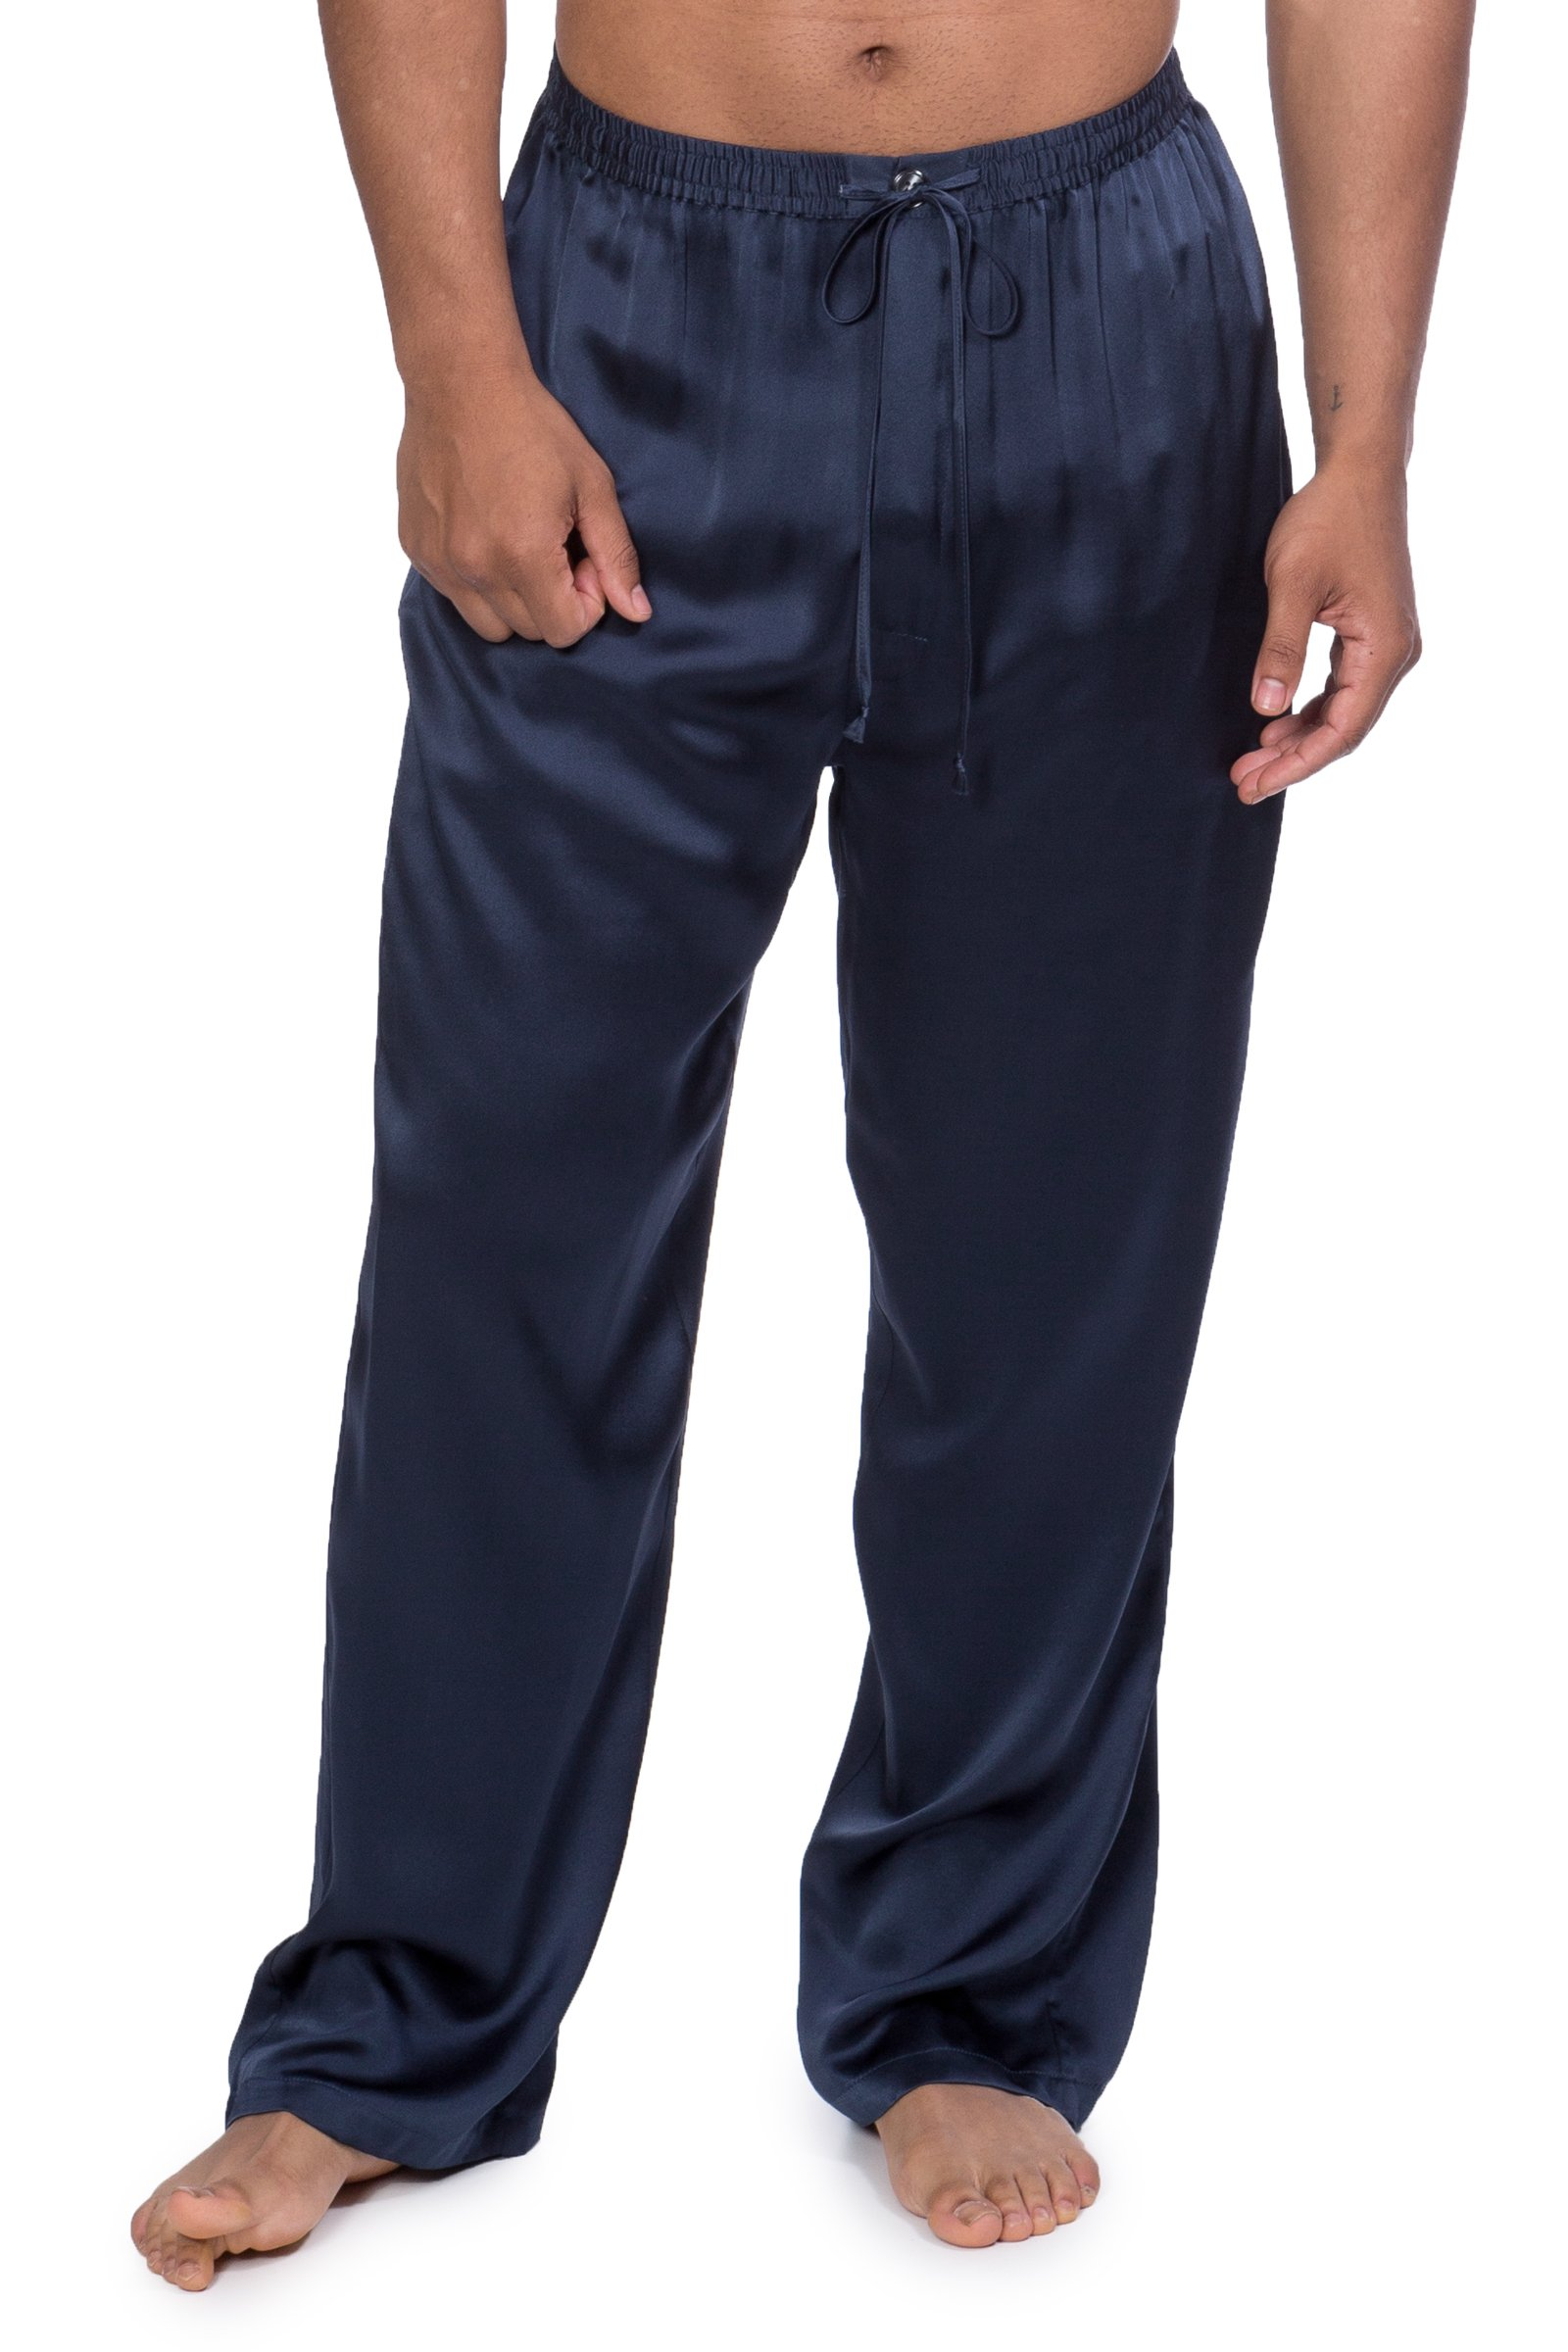 Men's Luxury Silk Pajama Pants (Hiruko, Midnight Blue, X-Large) Unique Valentine's Day Gifts for Him MS0201-MID-XL by TexereSilk (Image #1)